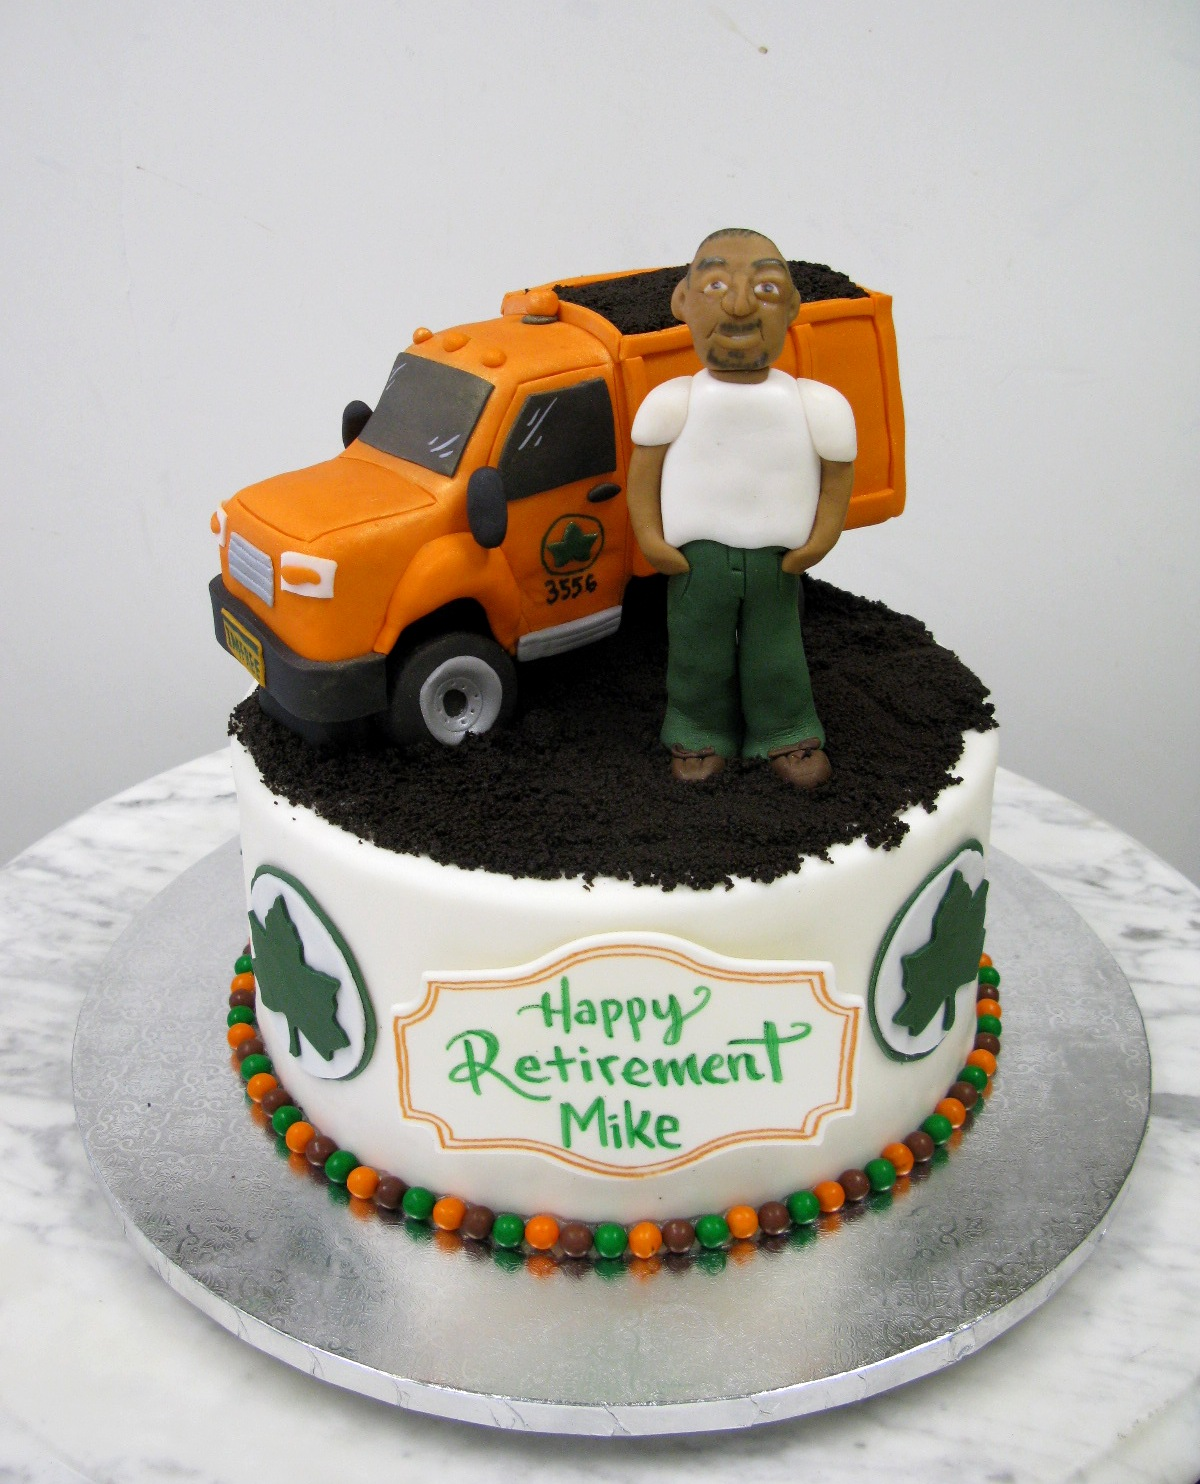 Parks Department Retirement